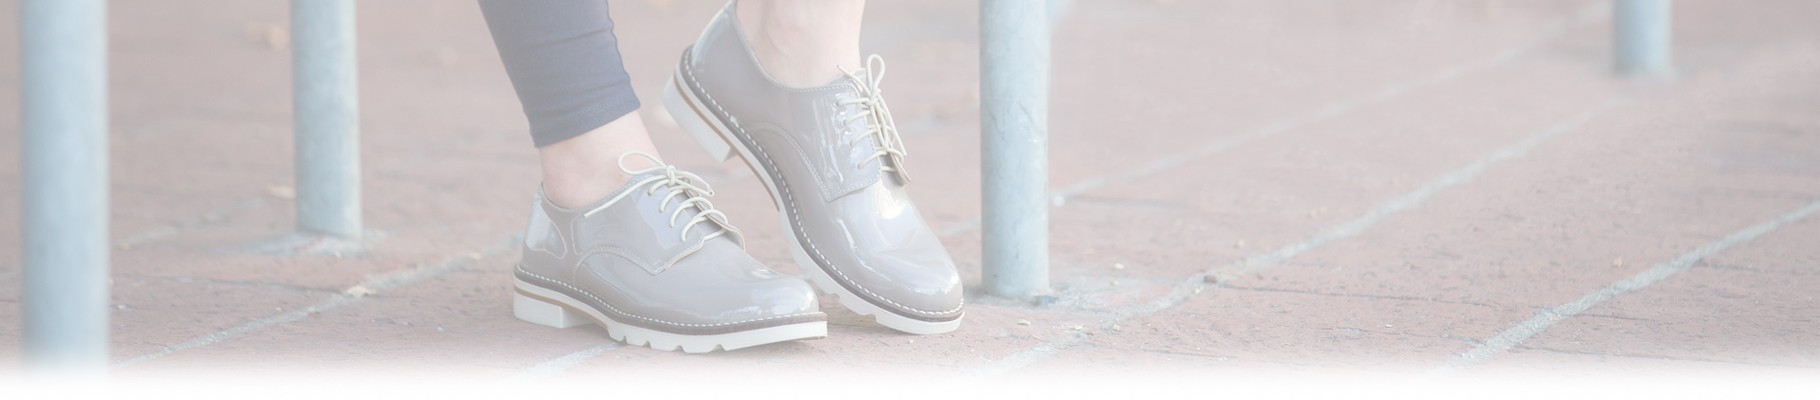 Women's lace-up shoes are the fashion accessory par excellence trend